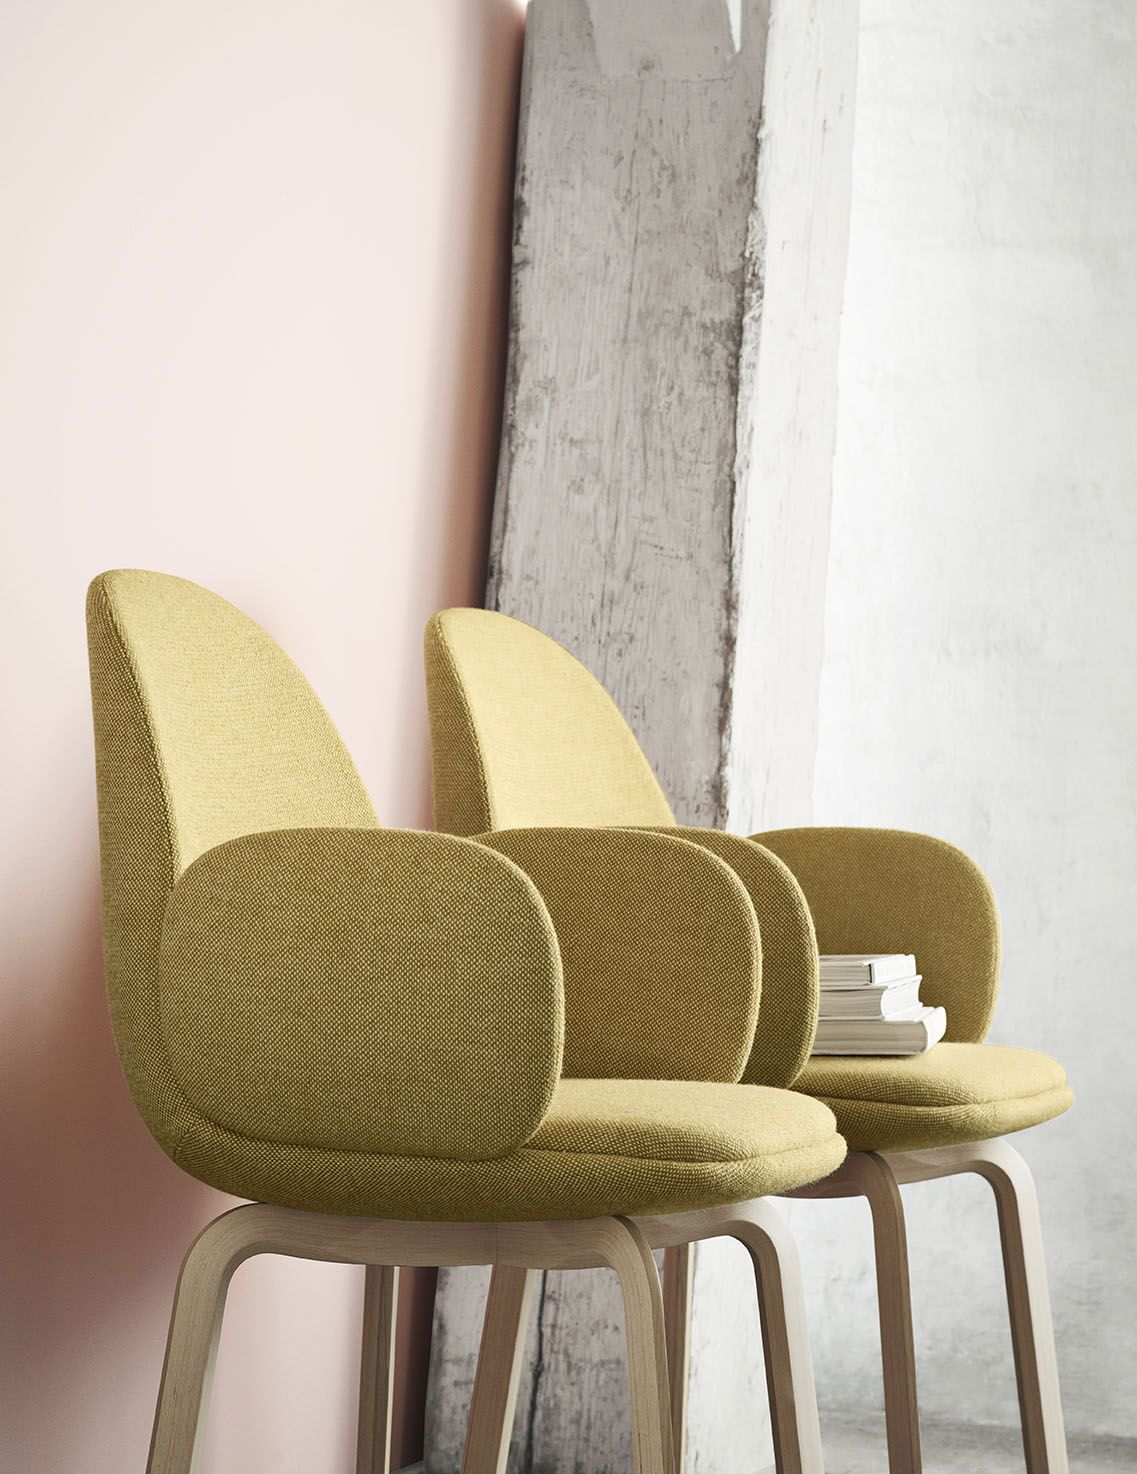 Fritz Hansen - NEW CHAIR! Sammen™ - the chair is for a pleasant evening in the company of good friends and family. Fri™ is designed by Jaime Hayon.